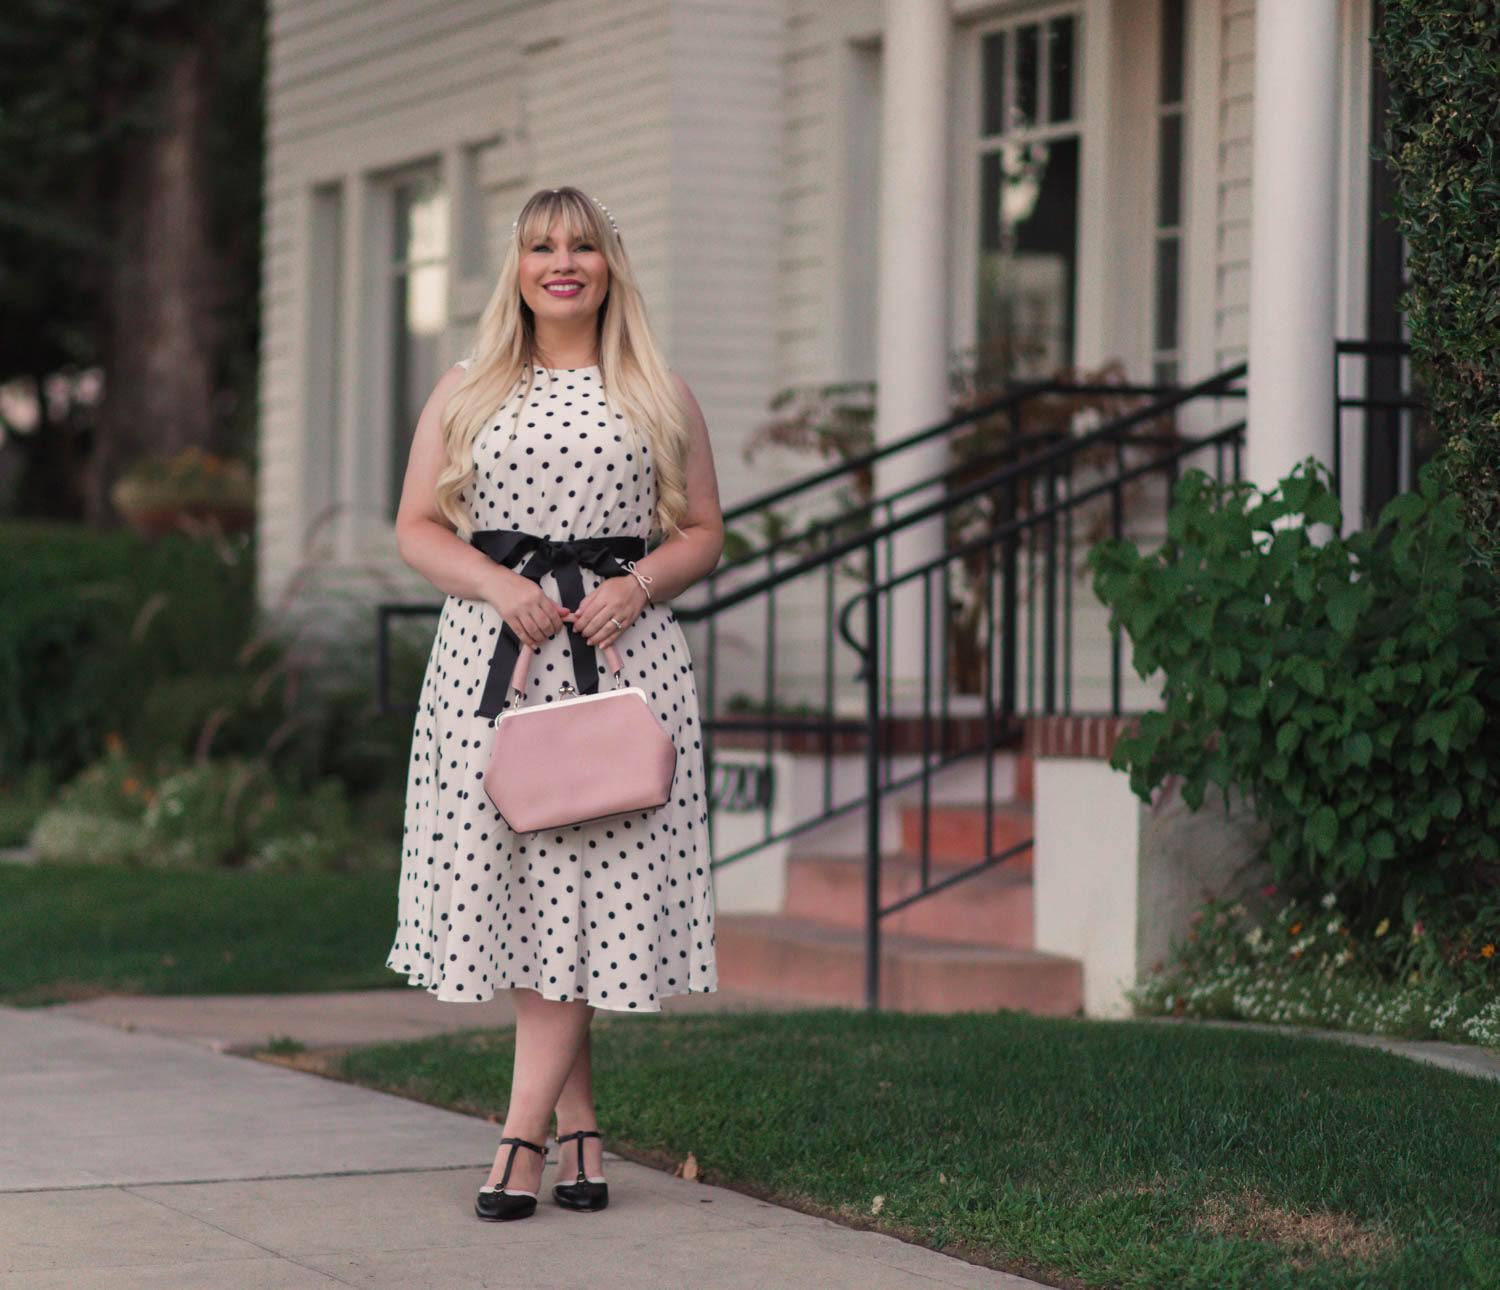 Elizabeth Hugen of Lizzie in Lace share a sleeveless polka dot dress along with her body struggles!